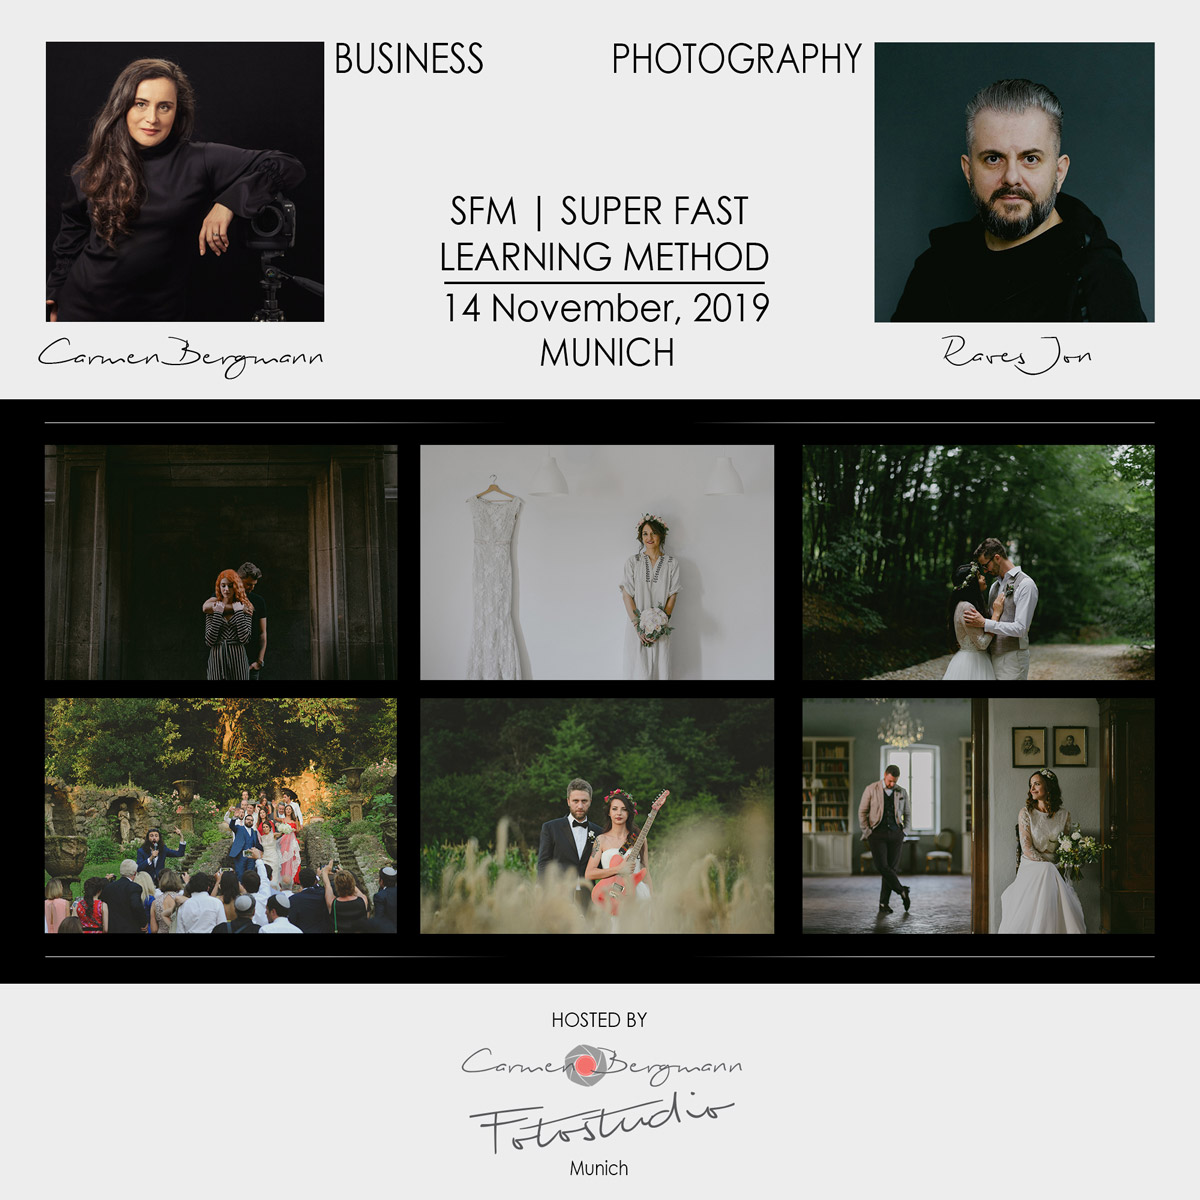 Wedding Photography and Marketing for Photographers Workshop Carmen Bergmann Studio Munich by Rares Ion